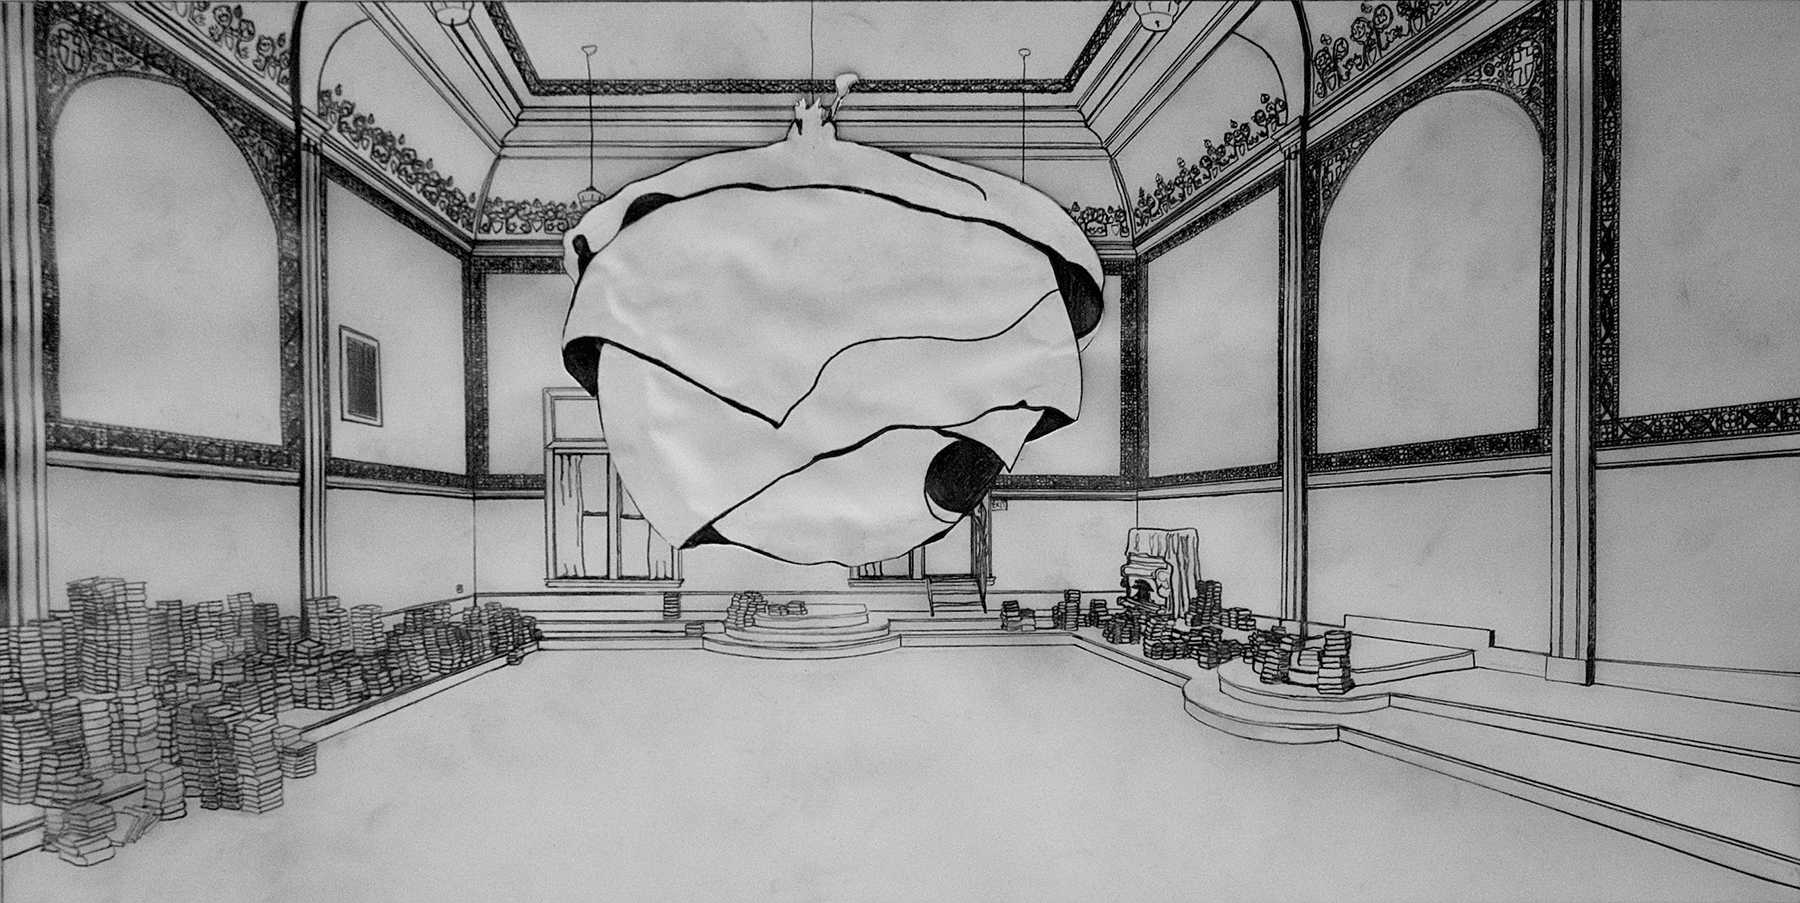 Eastern Star Hall Sketch with Nest